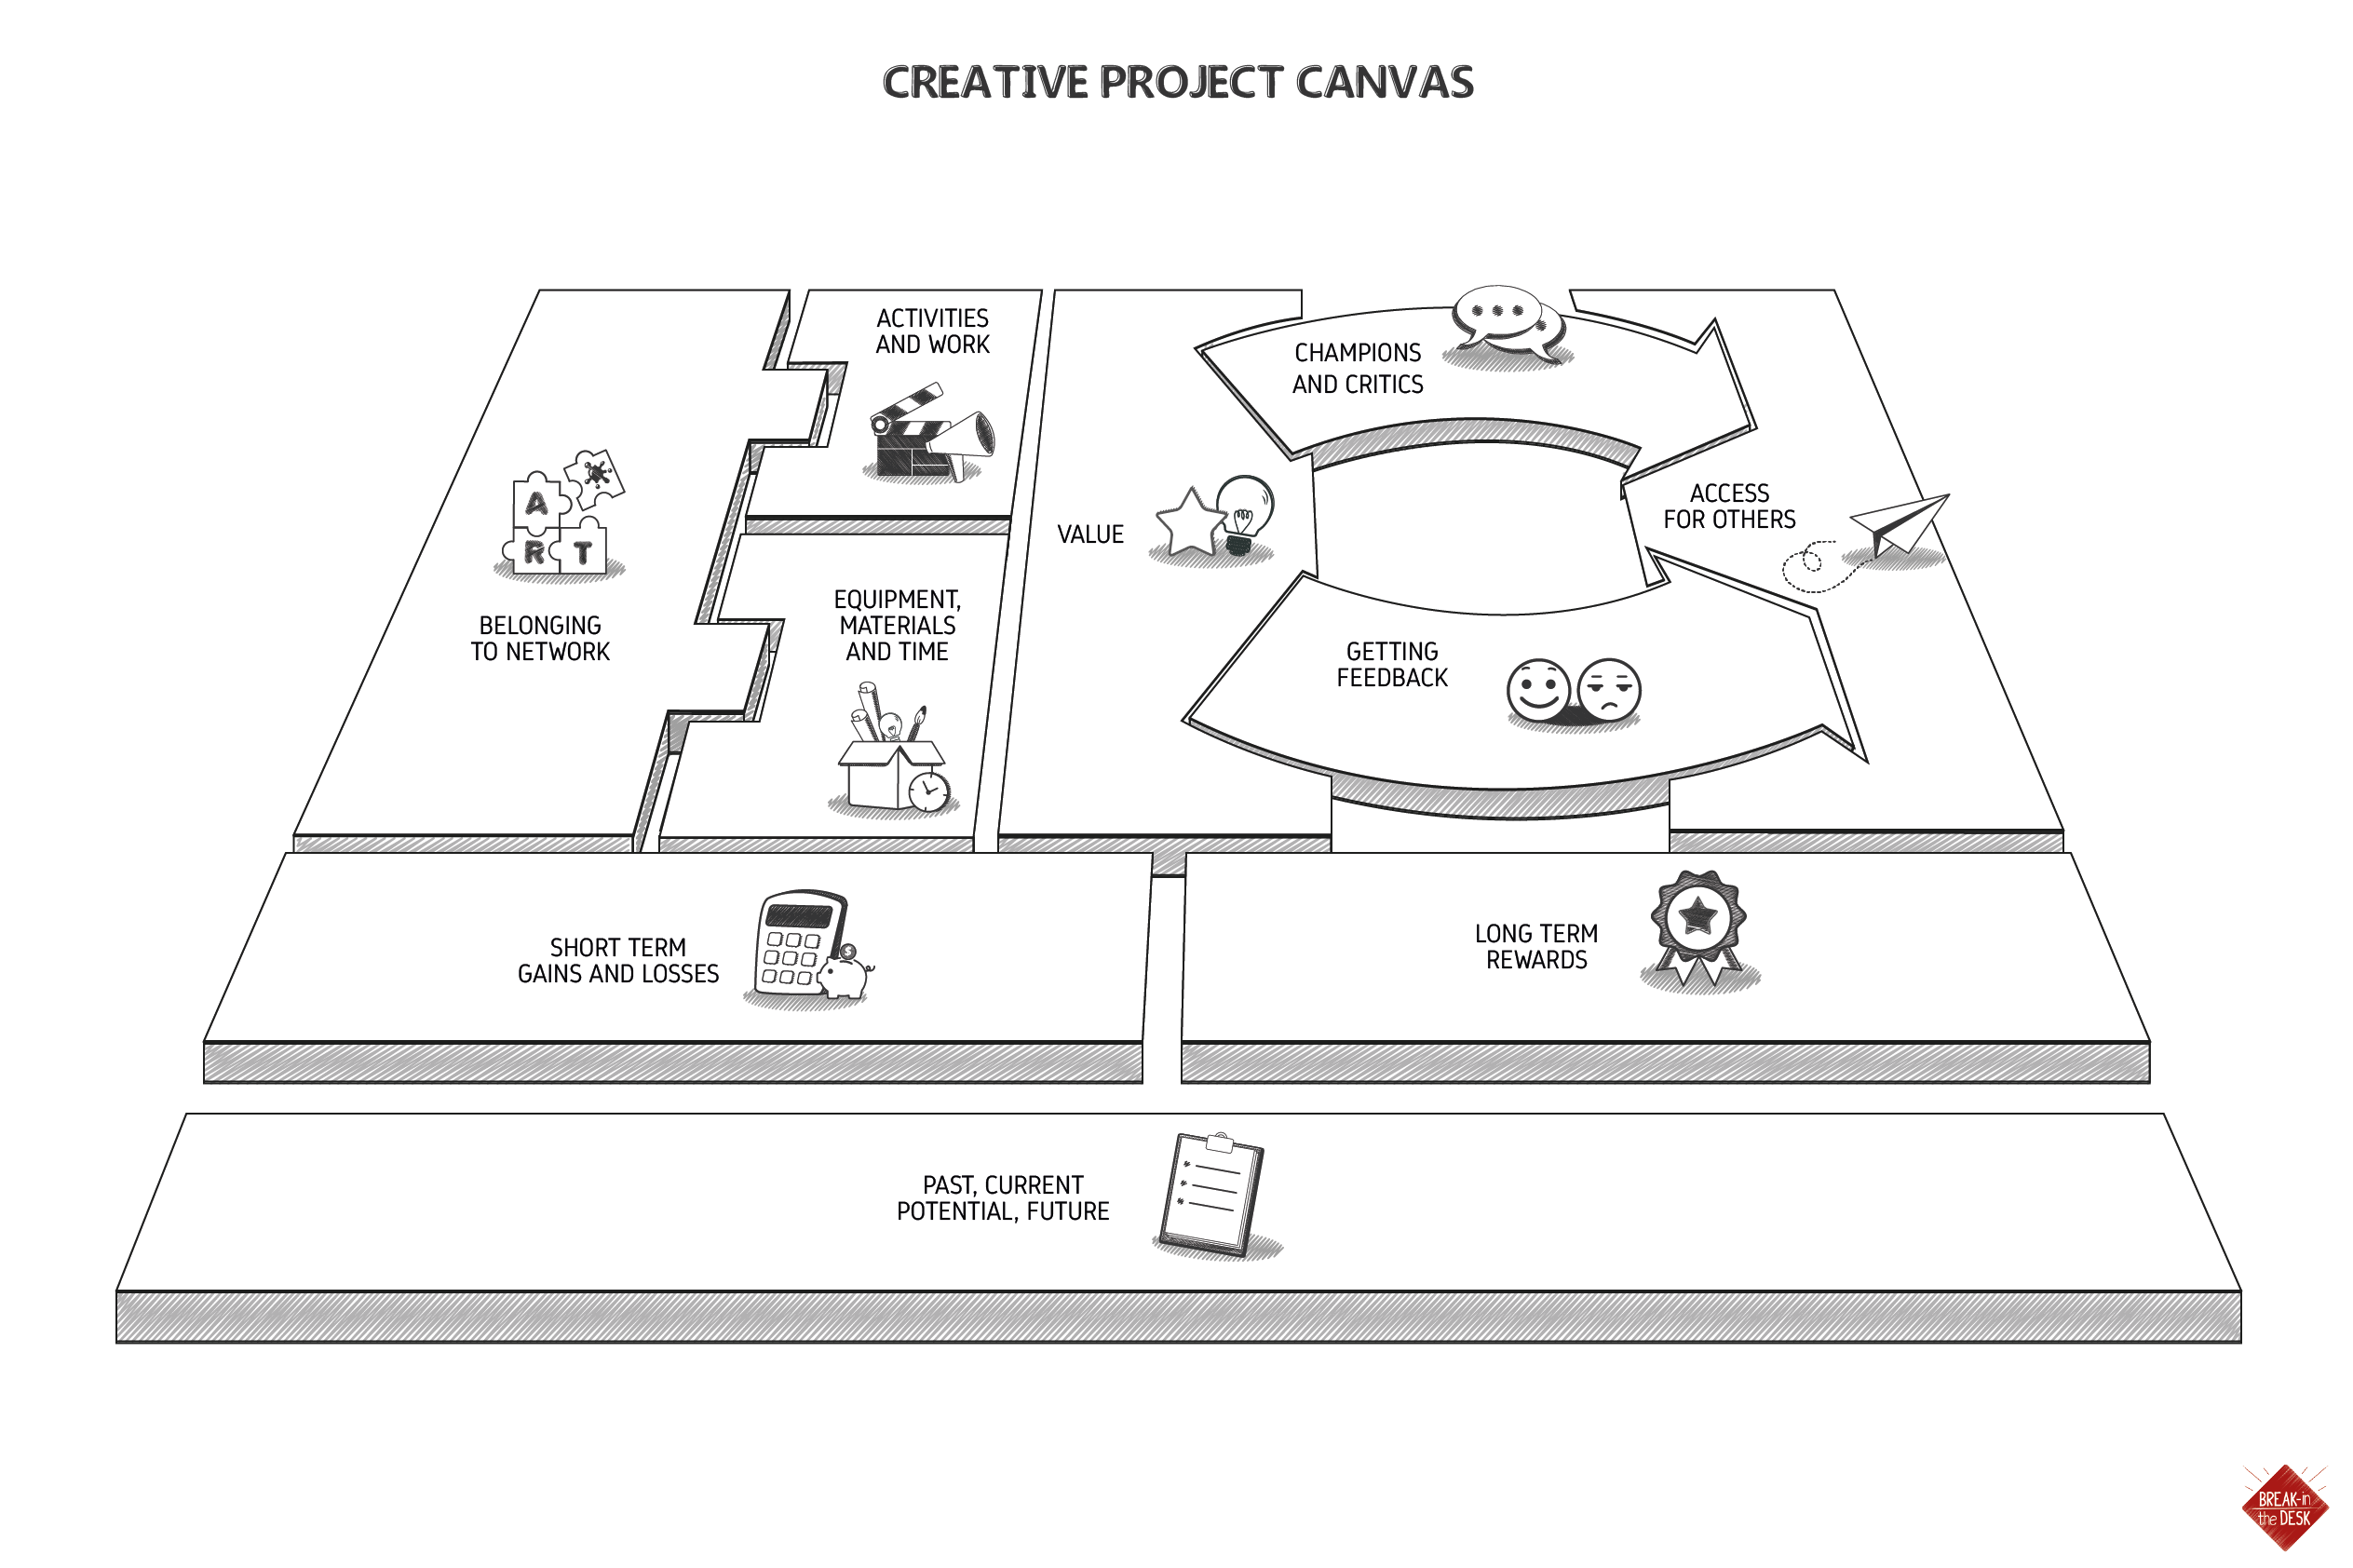 9 Themes of Creative Project Canvas